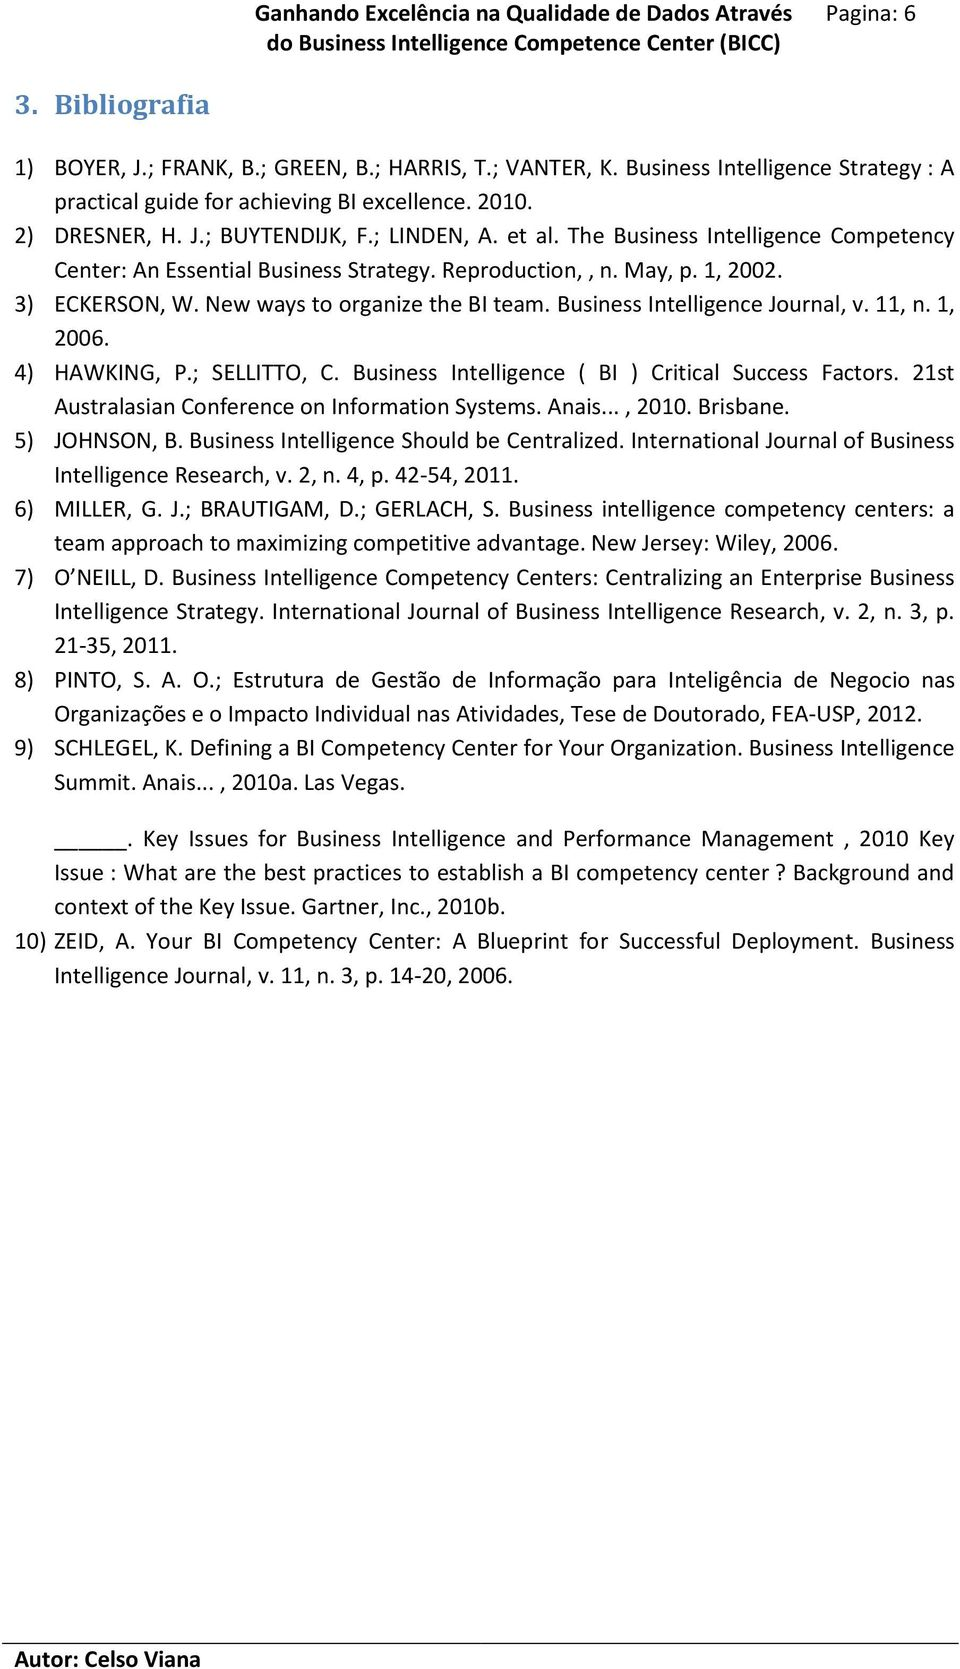 Business Intelligence Journal, v. 11, n. 1, 2006. 4) HAWKING, P.; SELLITTO, C. Business Intelligence ( BI ) Critical Success Factors. 21st Australasian Conference on Information Systems. Anais..., 2010.